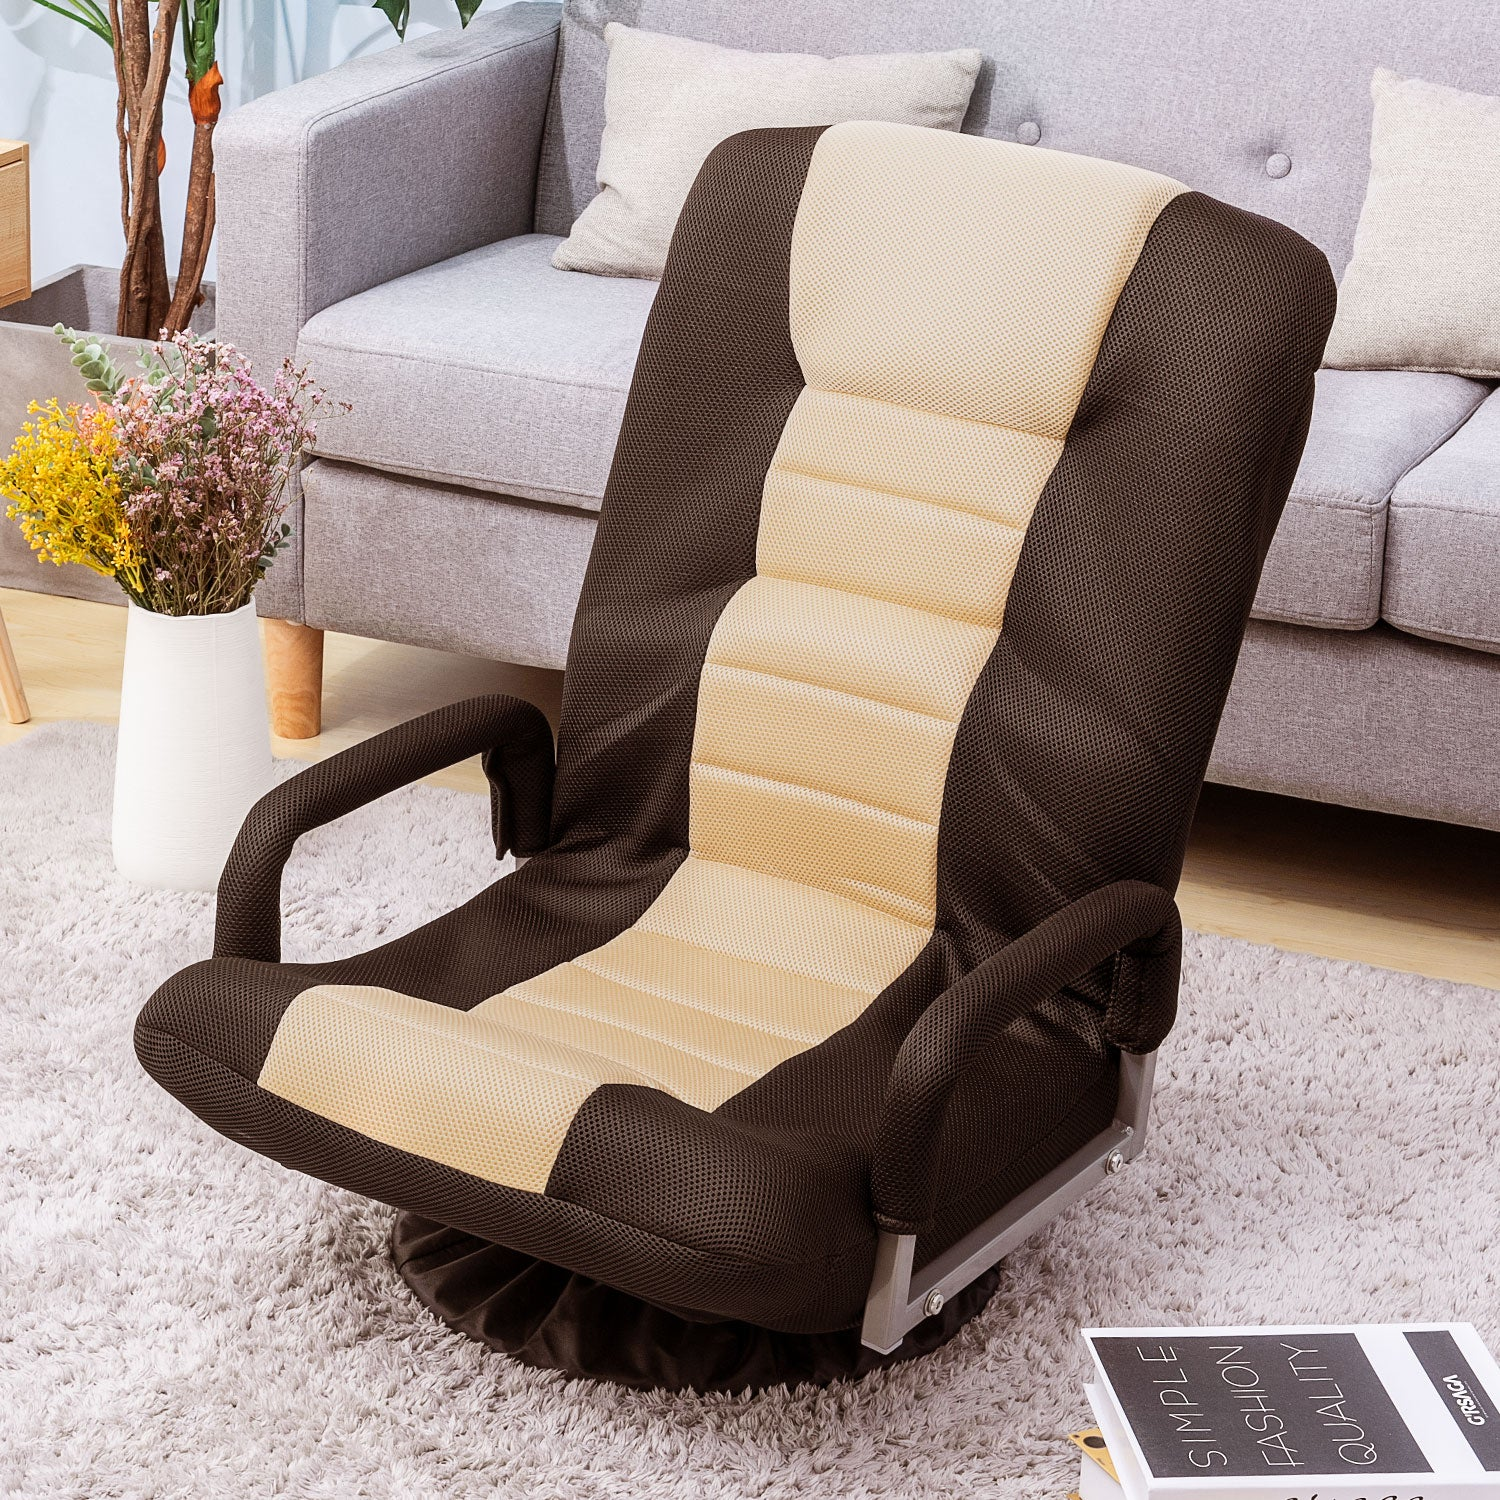 Tan Swivel Video Rocker Gaming Chair Adjustable 7-Position Floor Chair Folding Sofa Lounger BH037464